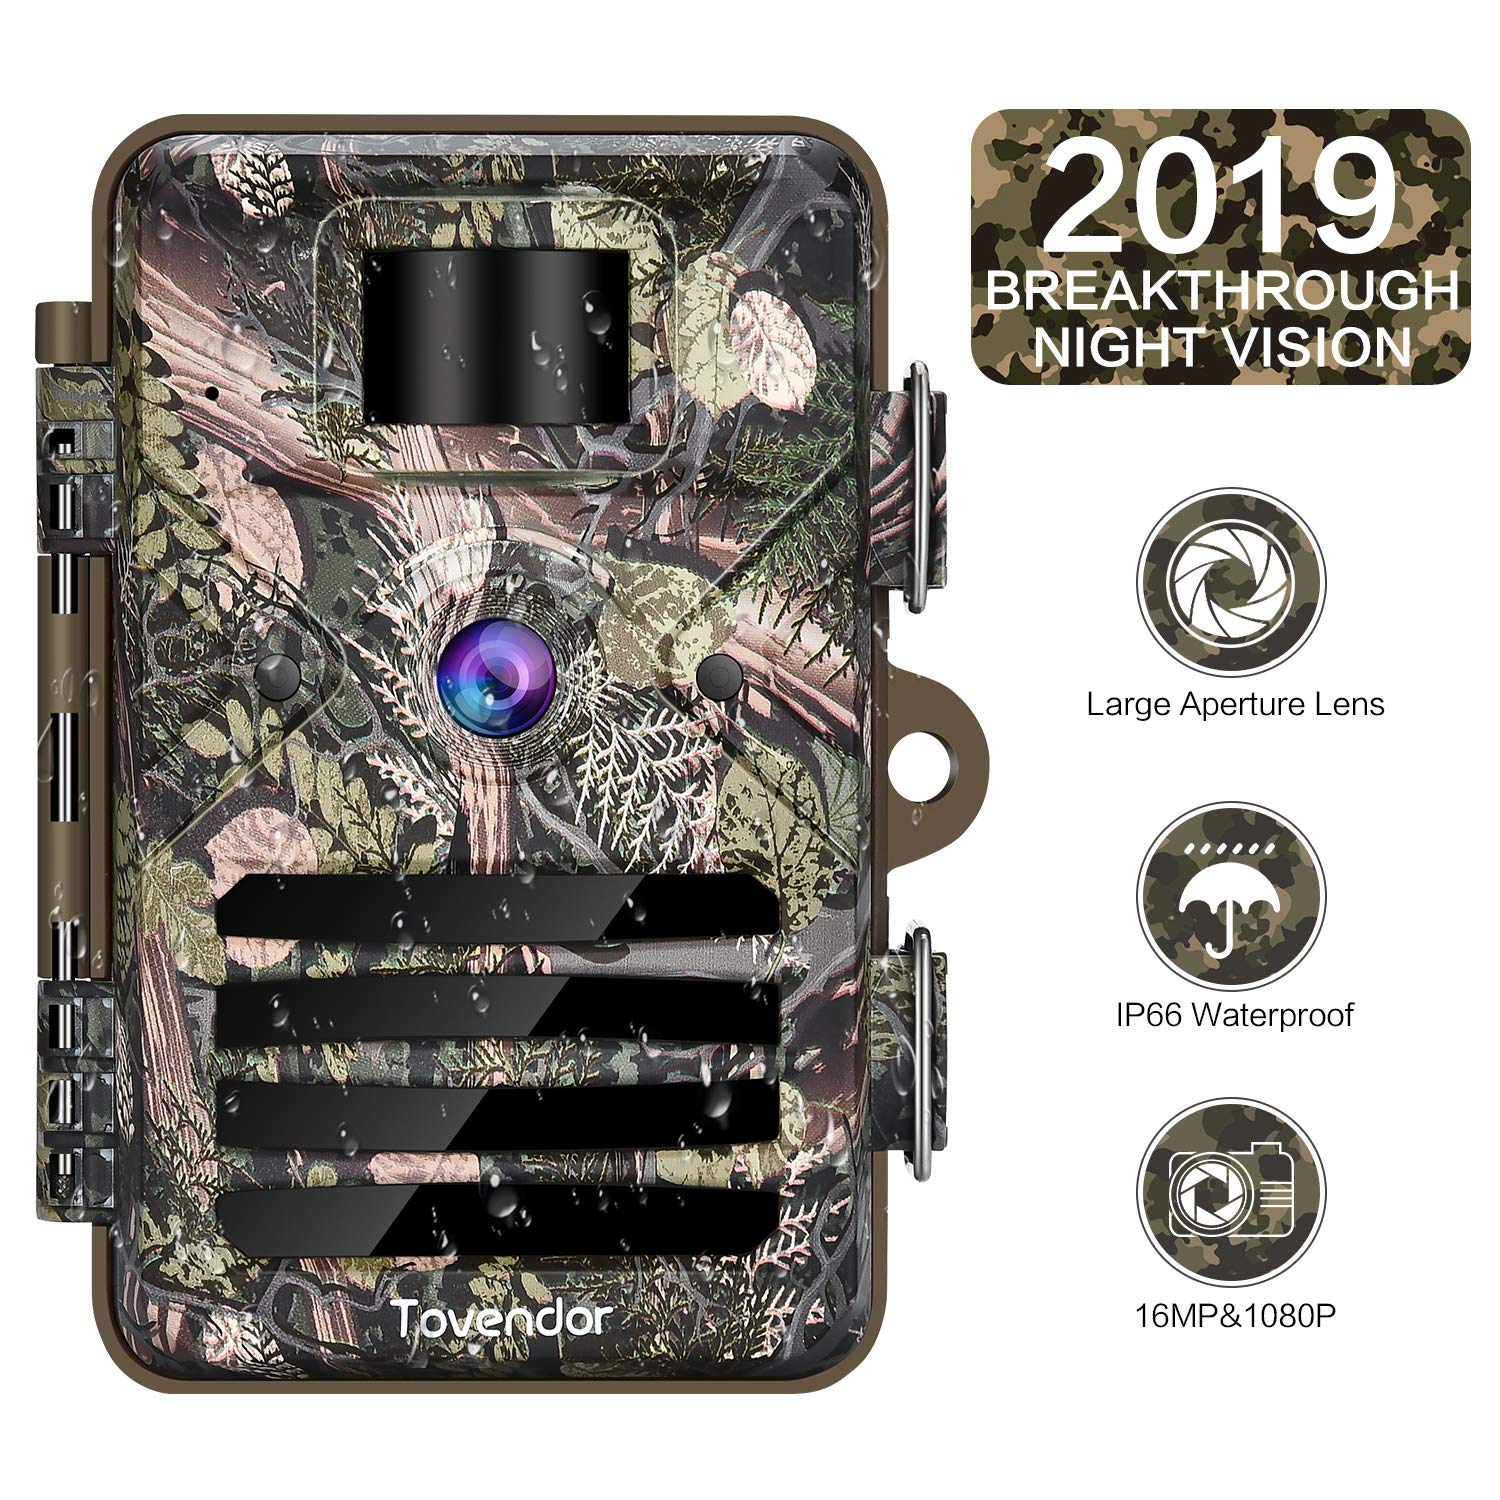 Tovendor 16MP Trail Camera IP66 Waterproof Outdoor Hunting Cam with 940nm No Glow Night Vision, 0.3s Trigger Time Motion Activated Wildlife Monitor